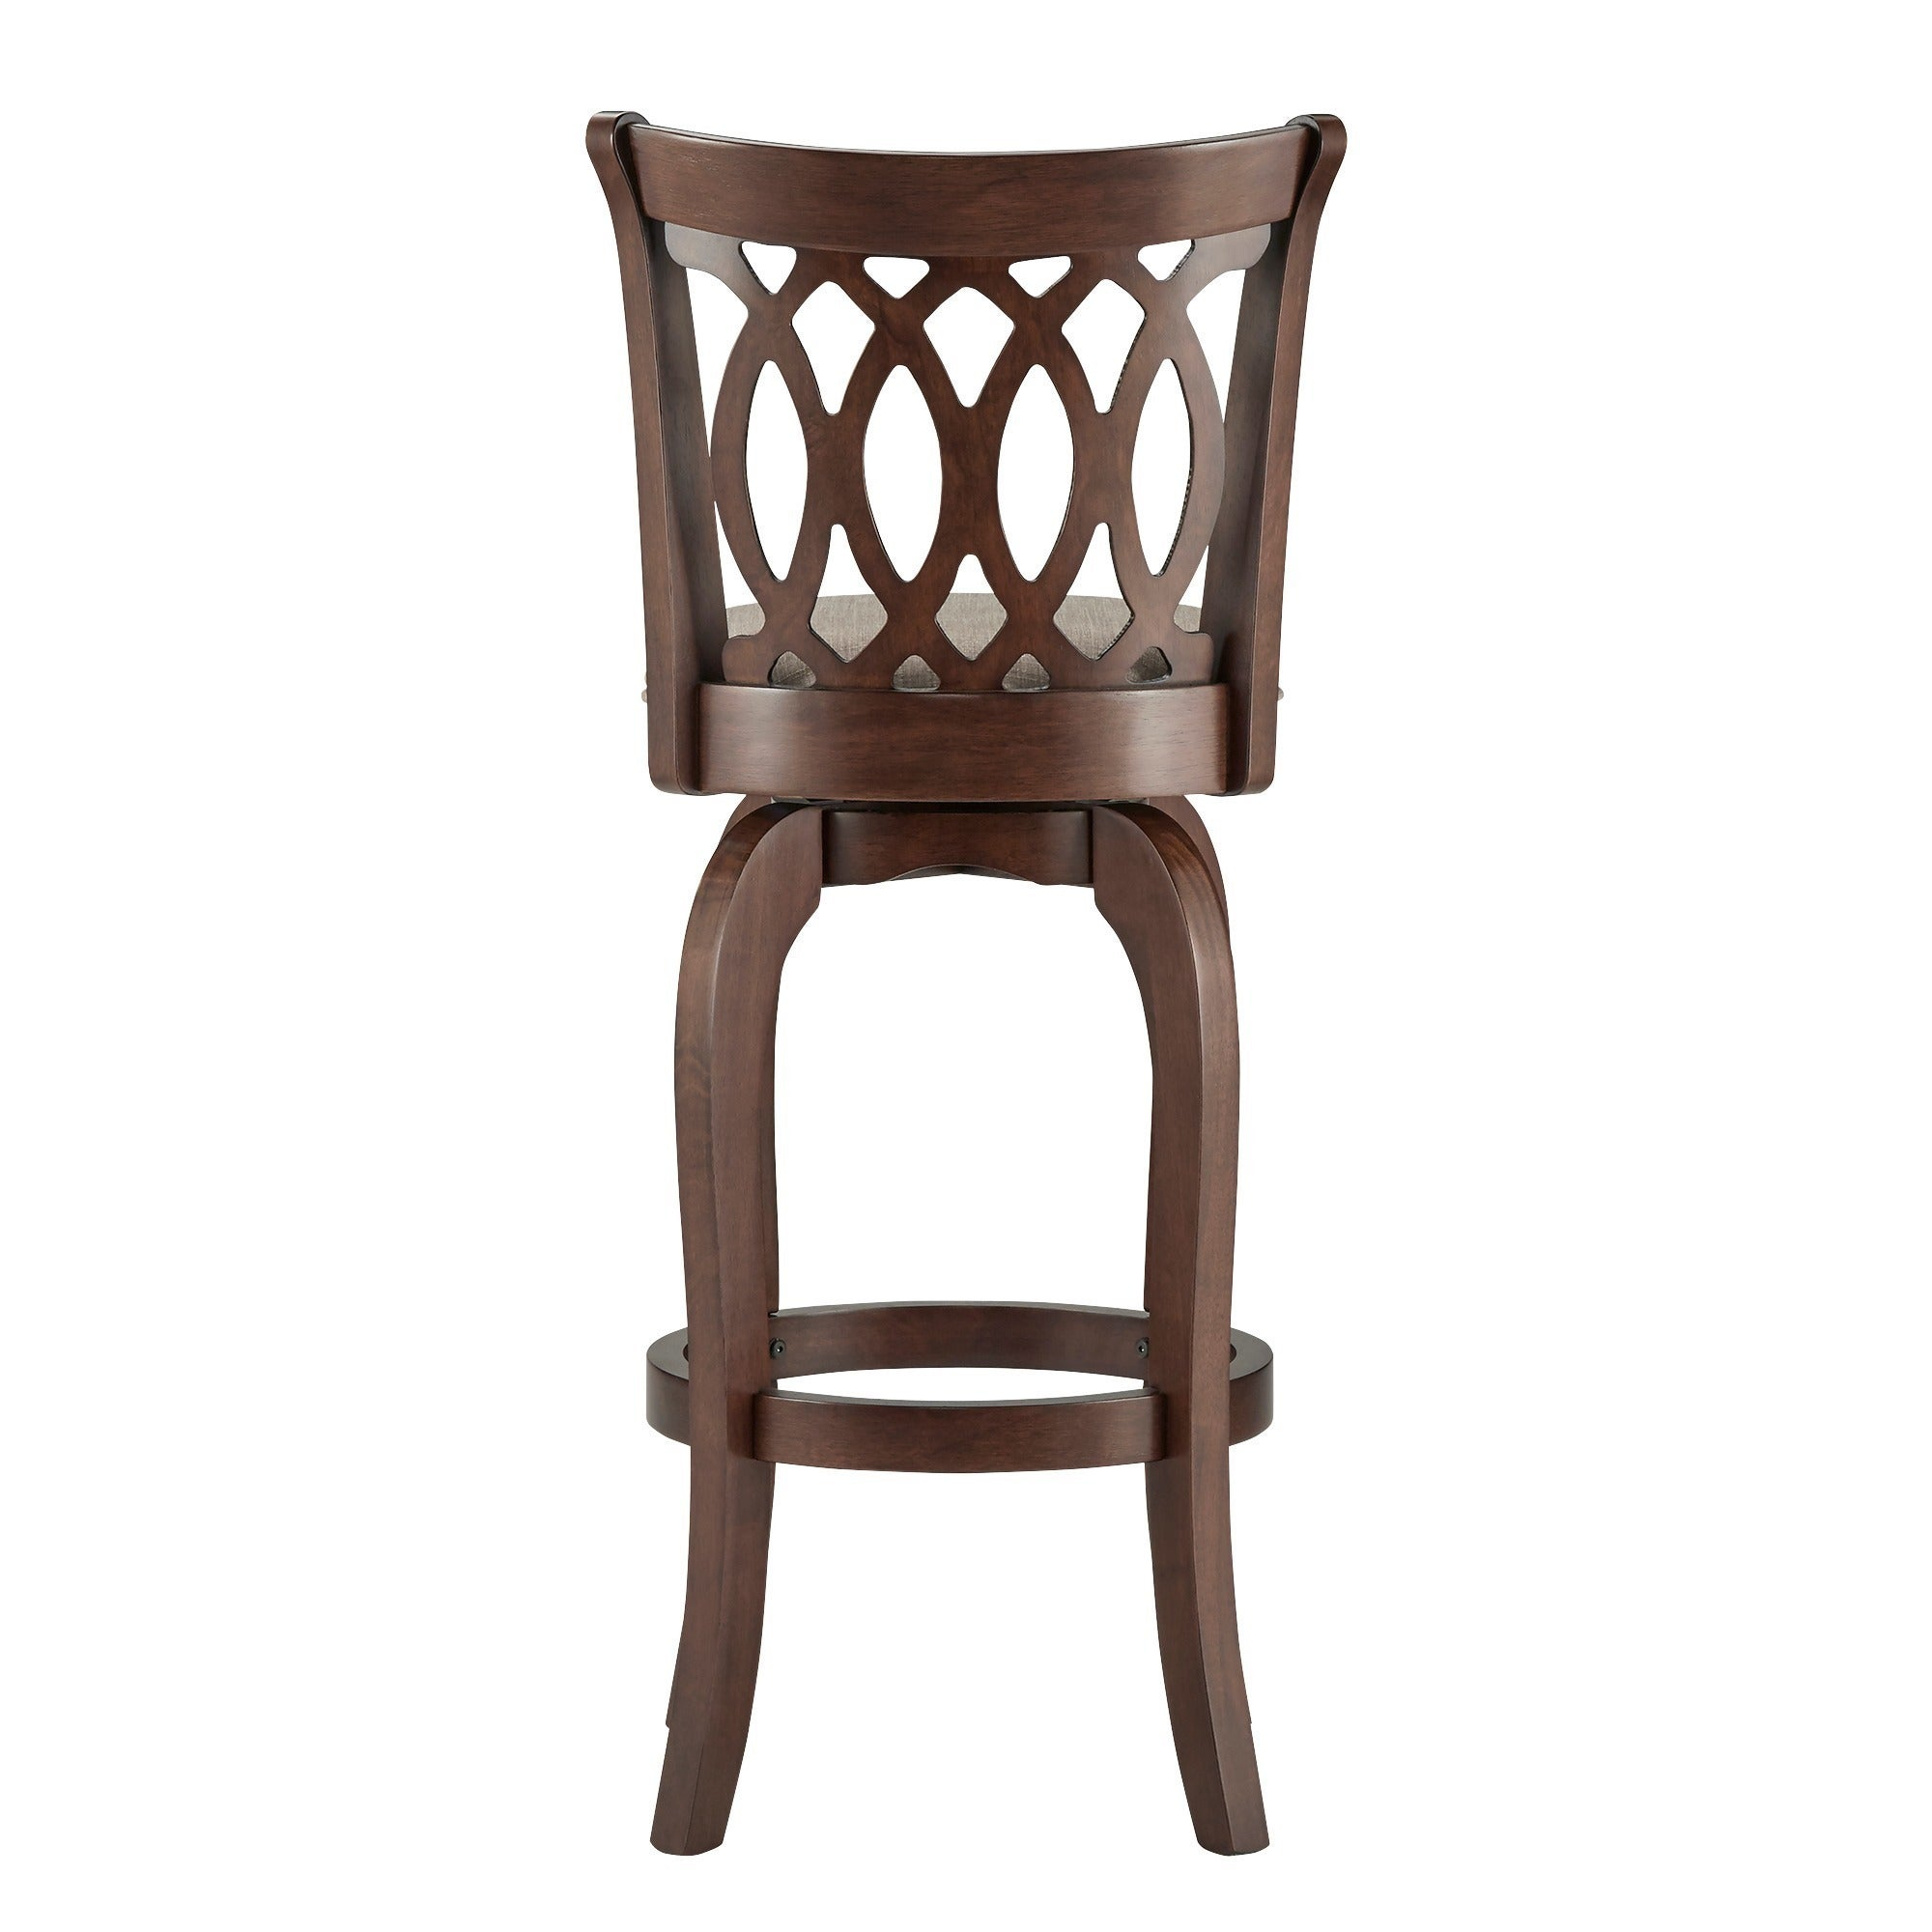 Verona Linen Scroll-back Swivel 29-inch Bar Stool by iNSPIRE Q Classic -  Free Shipping Today - Overstock.com - 12112319